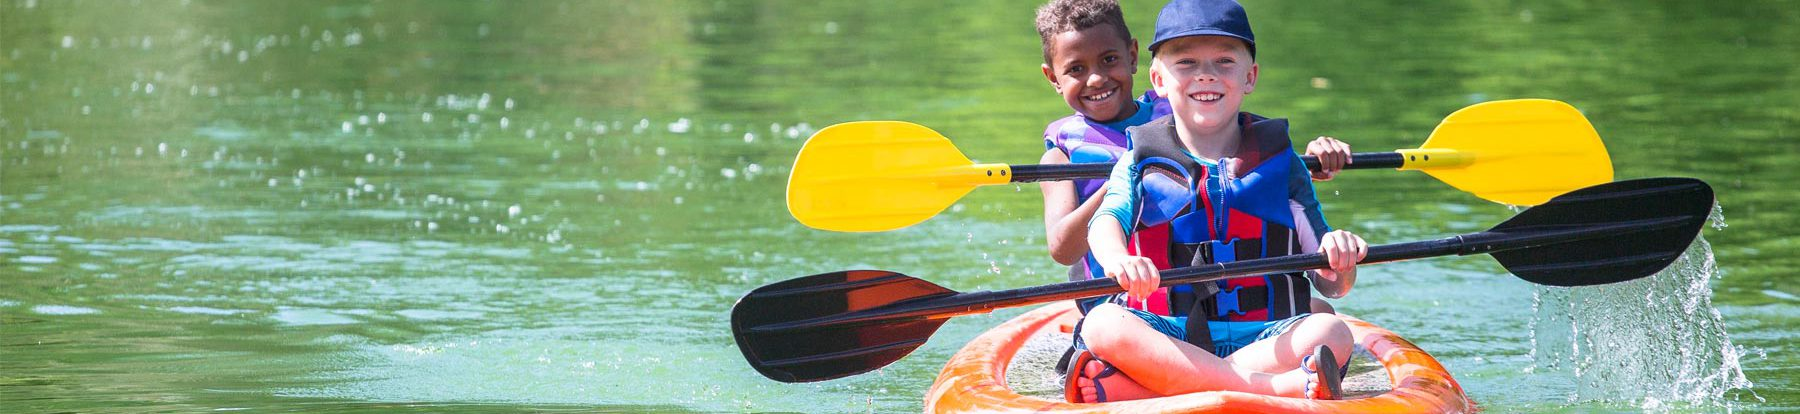 Two young smiling boys wearing multi-colored life vests while paddling in a orange kayak on a calm green lake